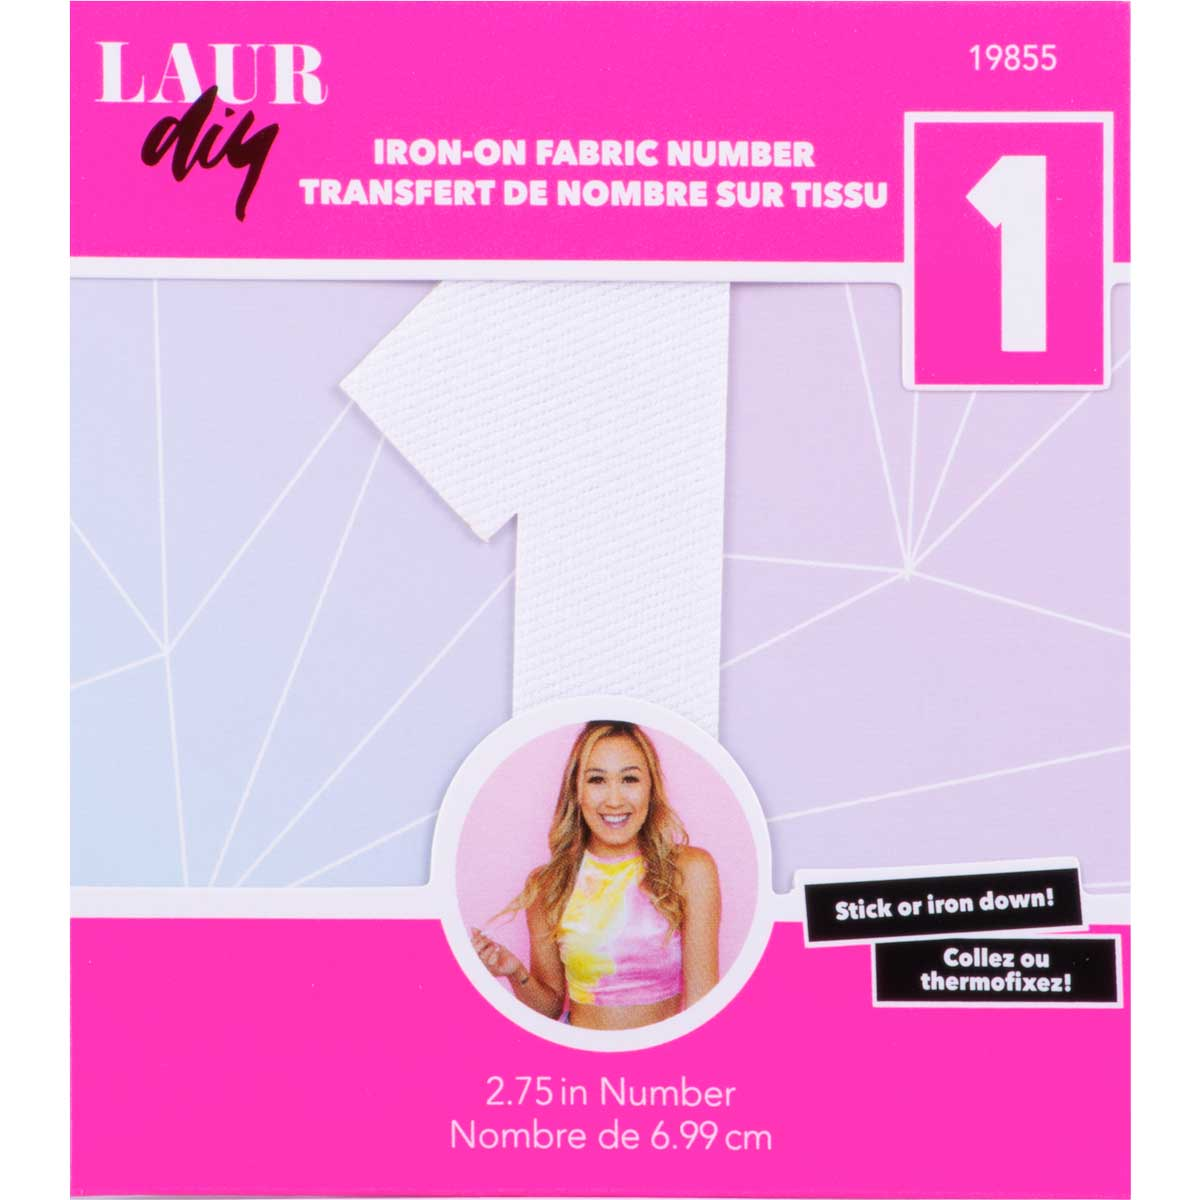 LaurDIY ® Iron-on Fabric Letters - 1 - 19855